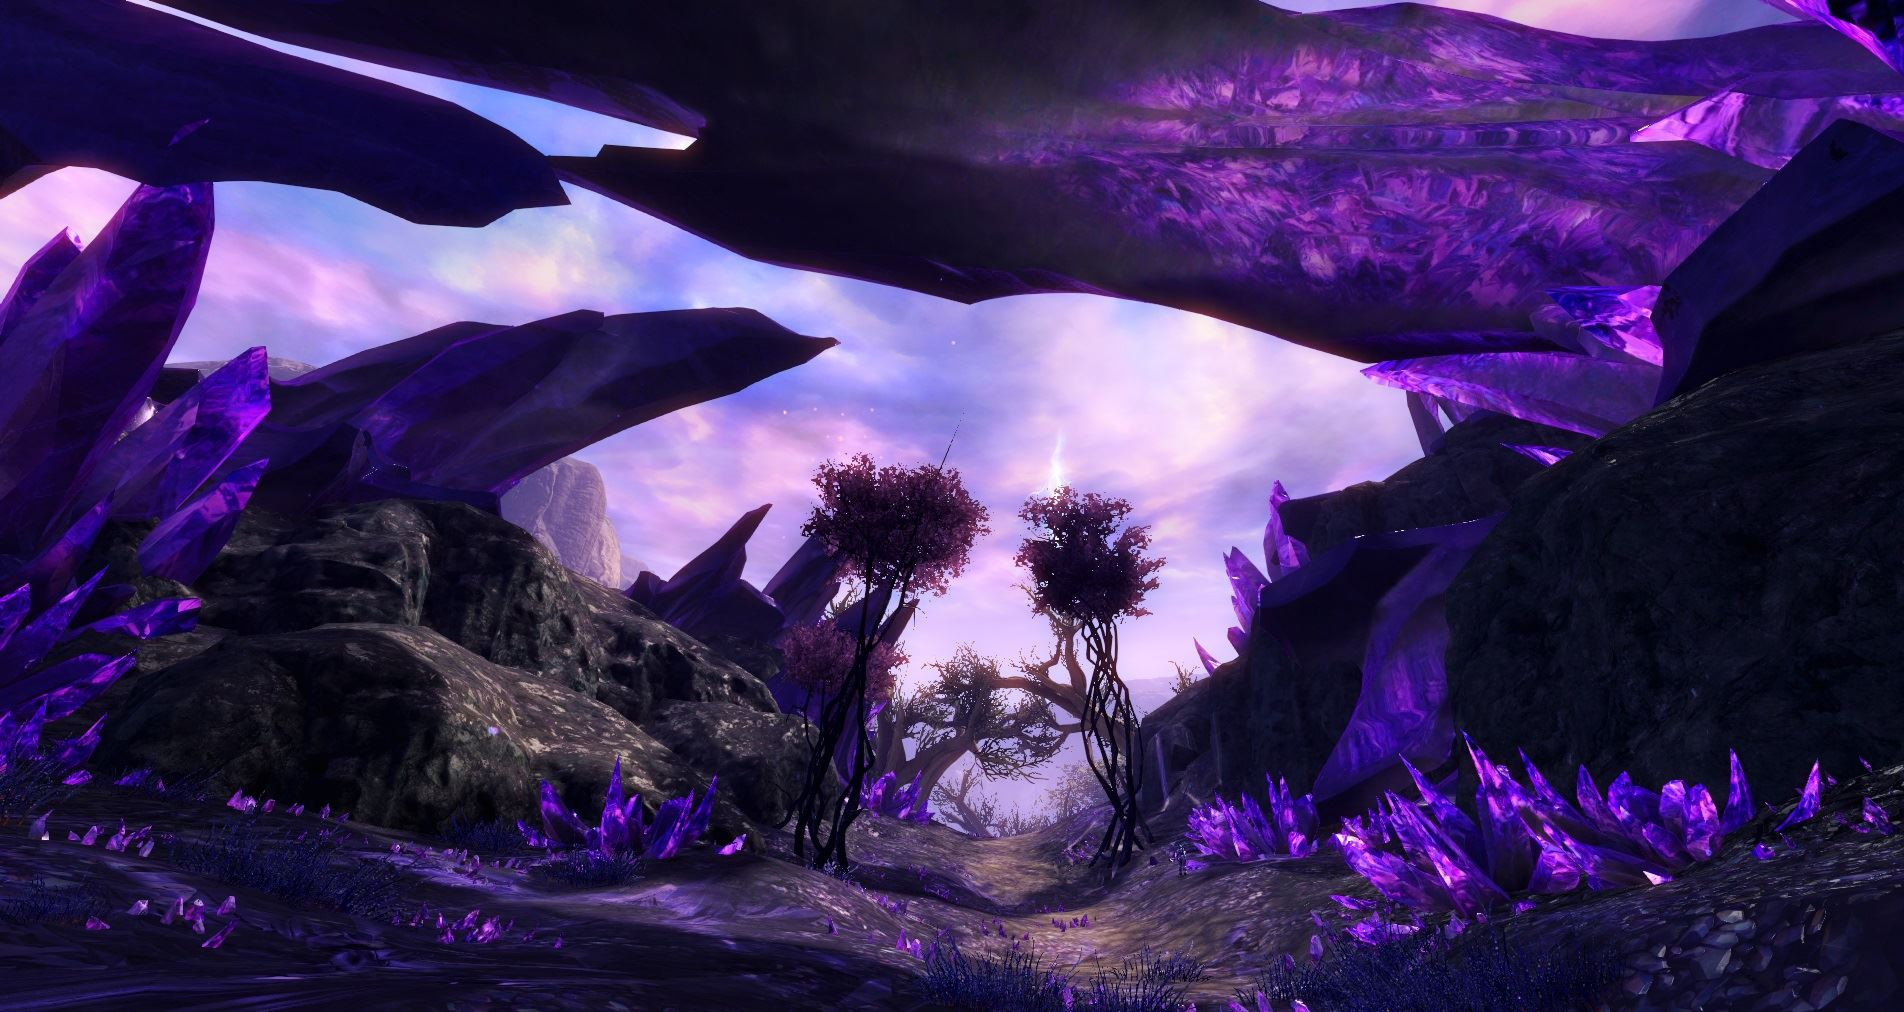 guild wars 2 Path of Fire recensione guild wars 2 living world GW2 gallery